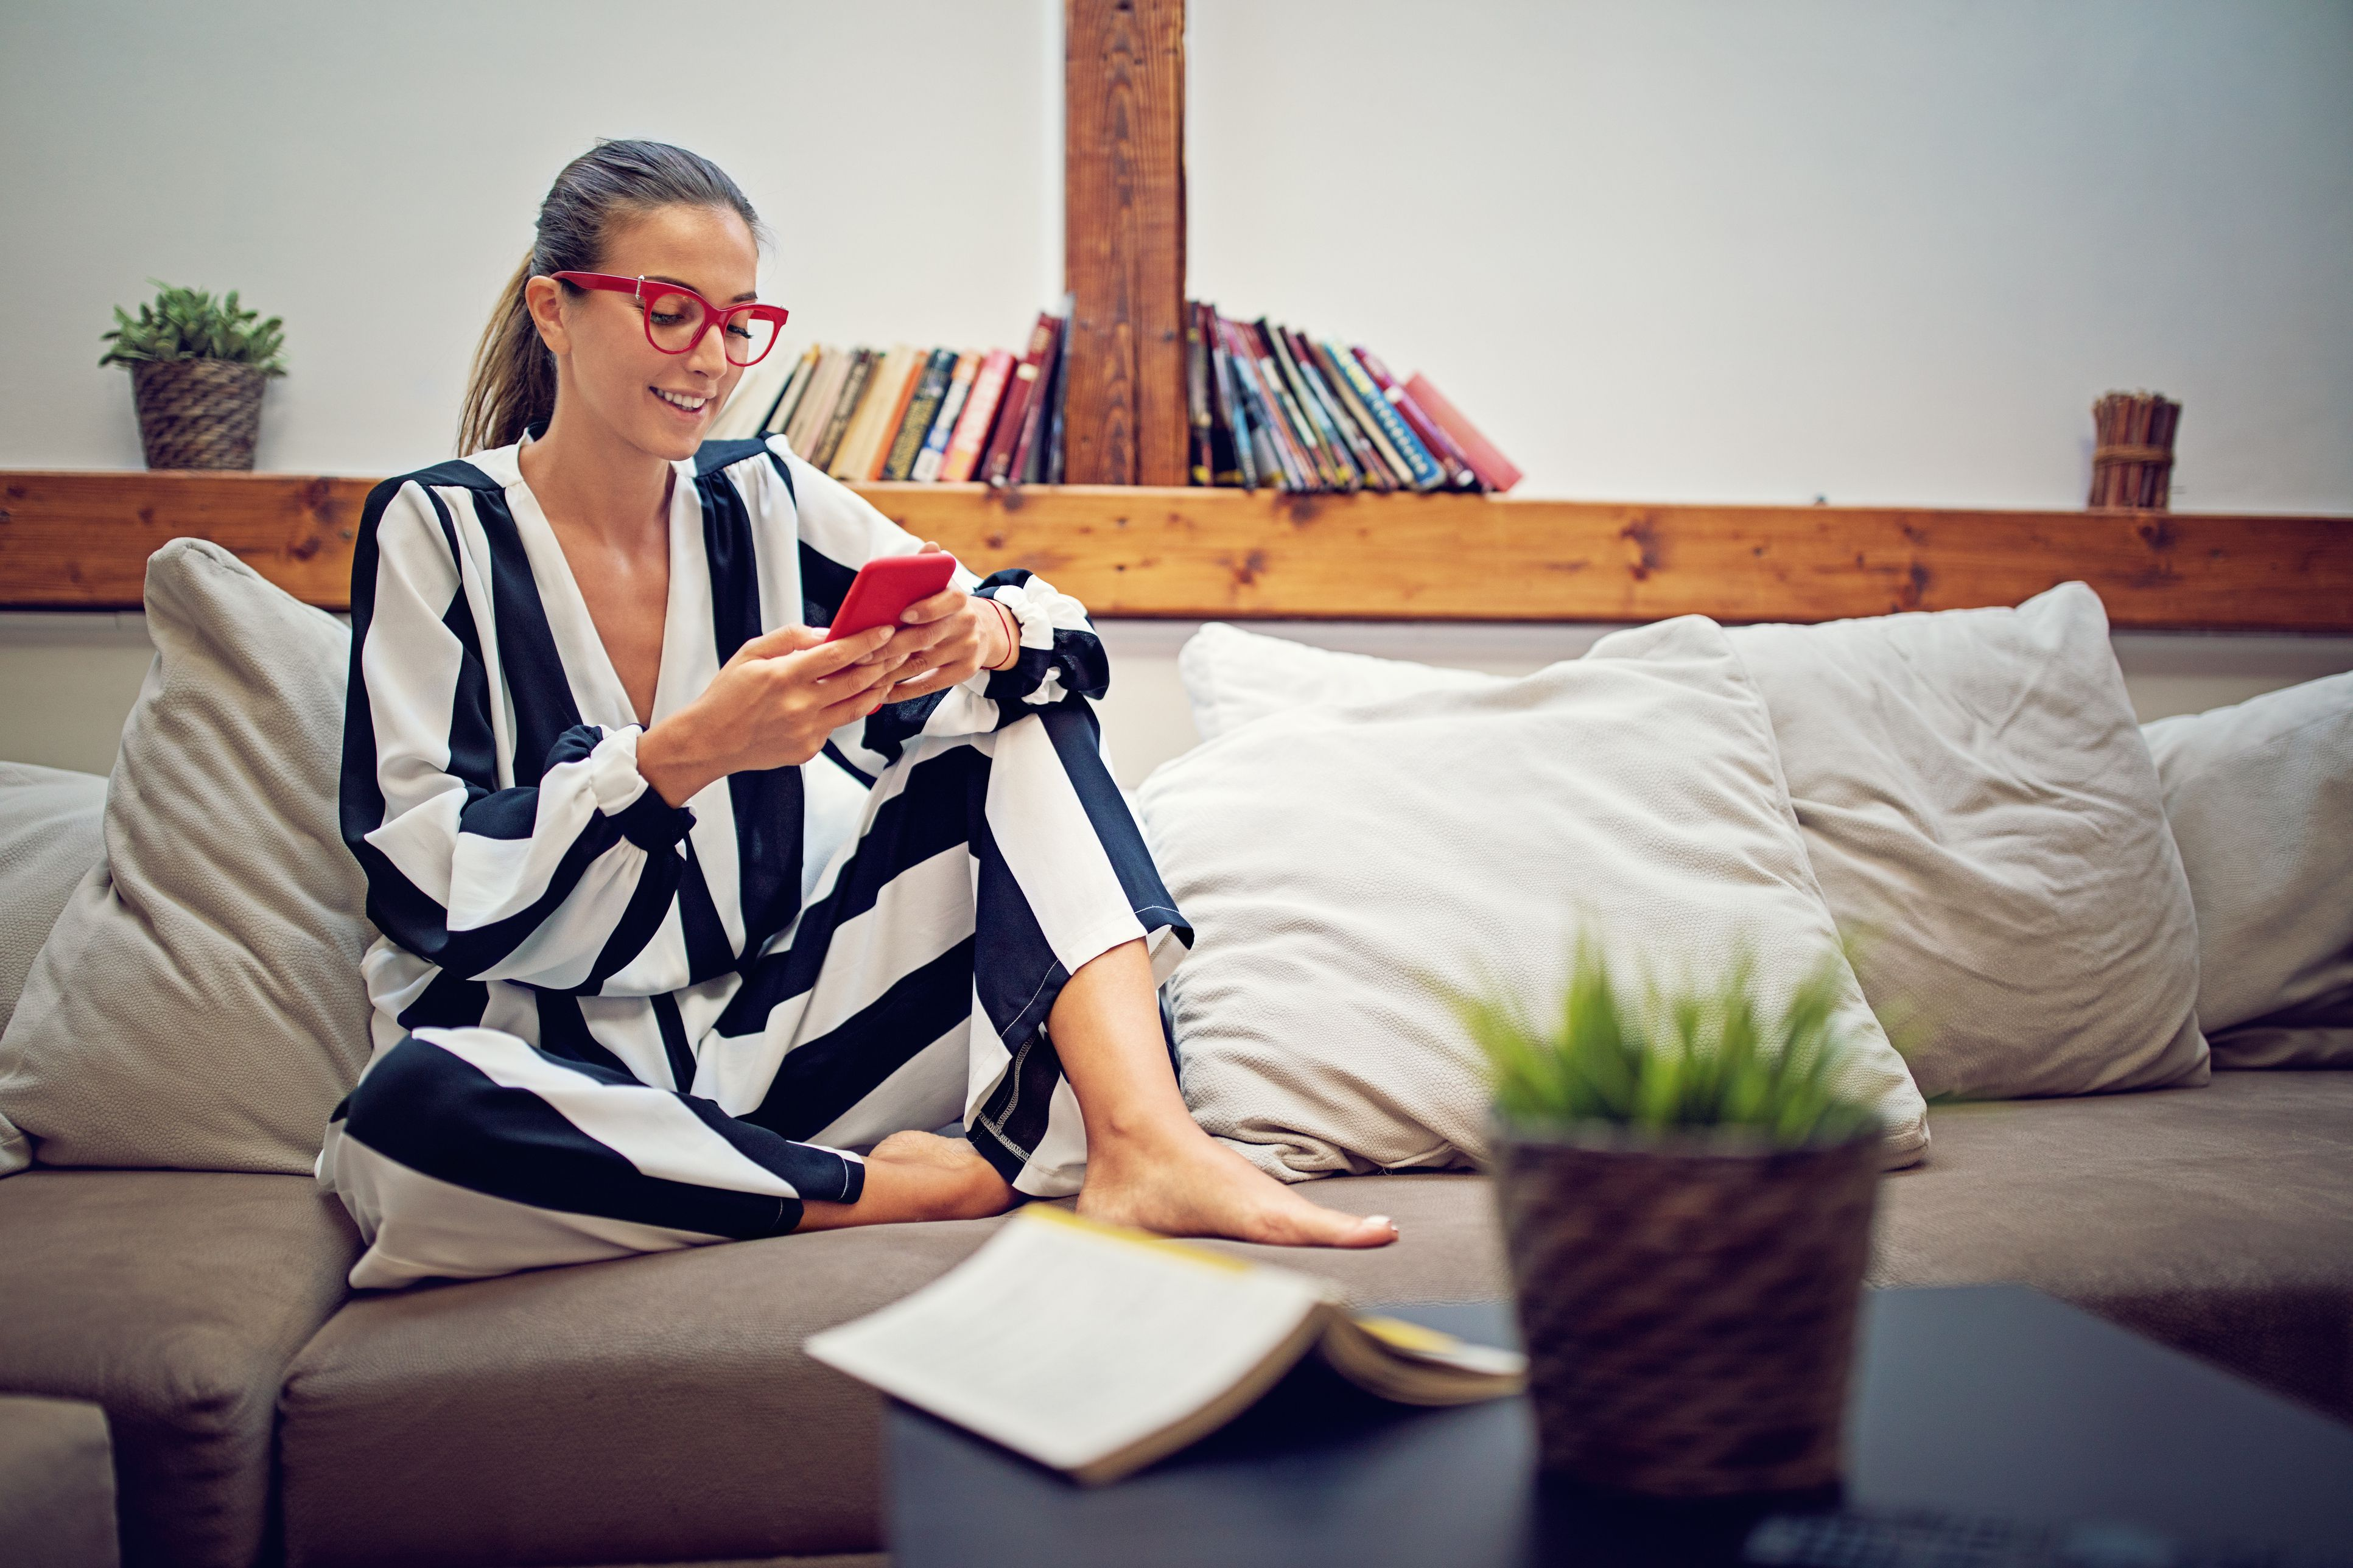 Young girl is sitting on the sofa and texting